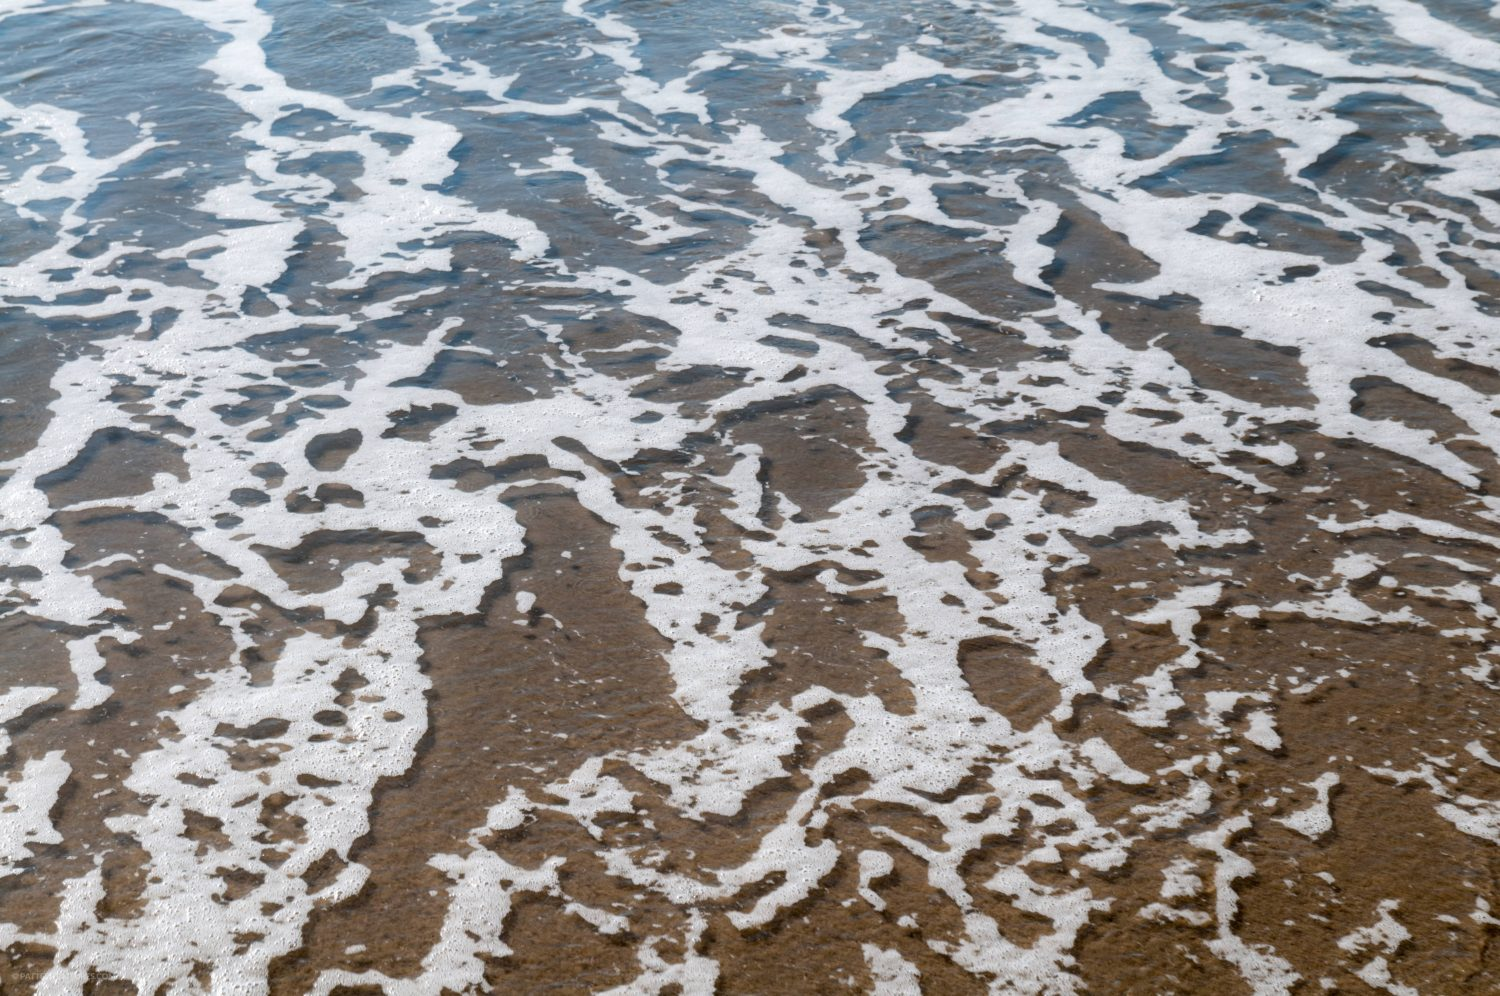 Water foam bubbles on the beach surface textured background